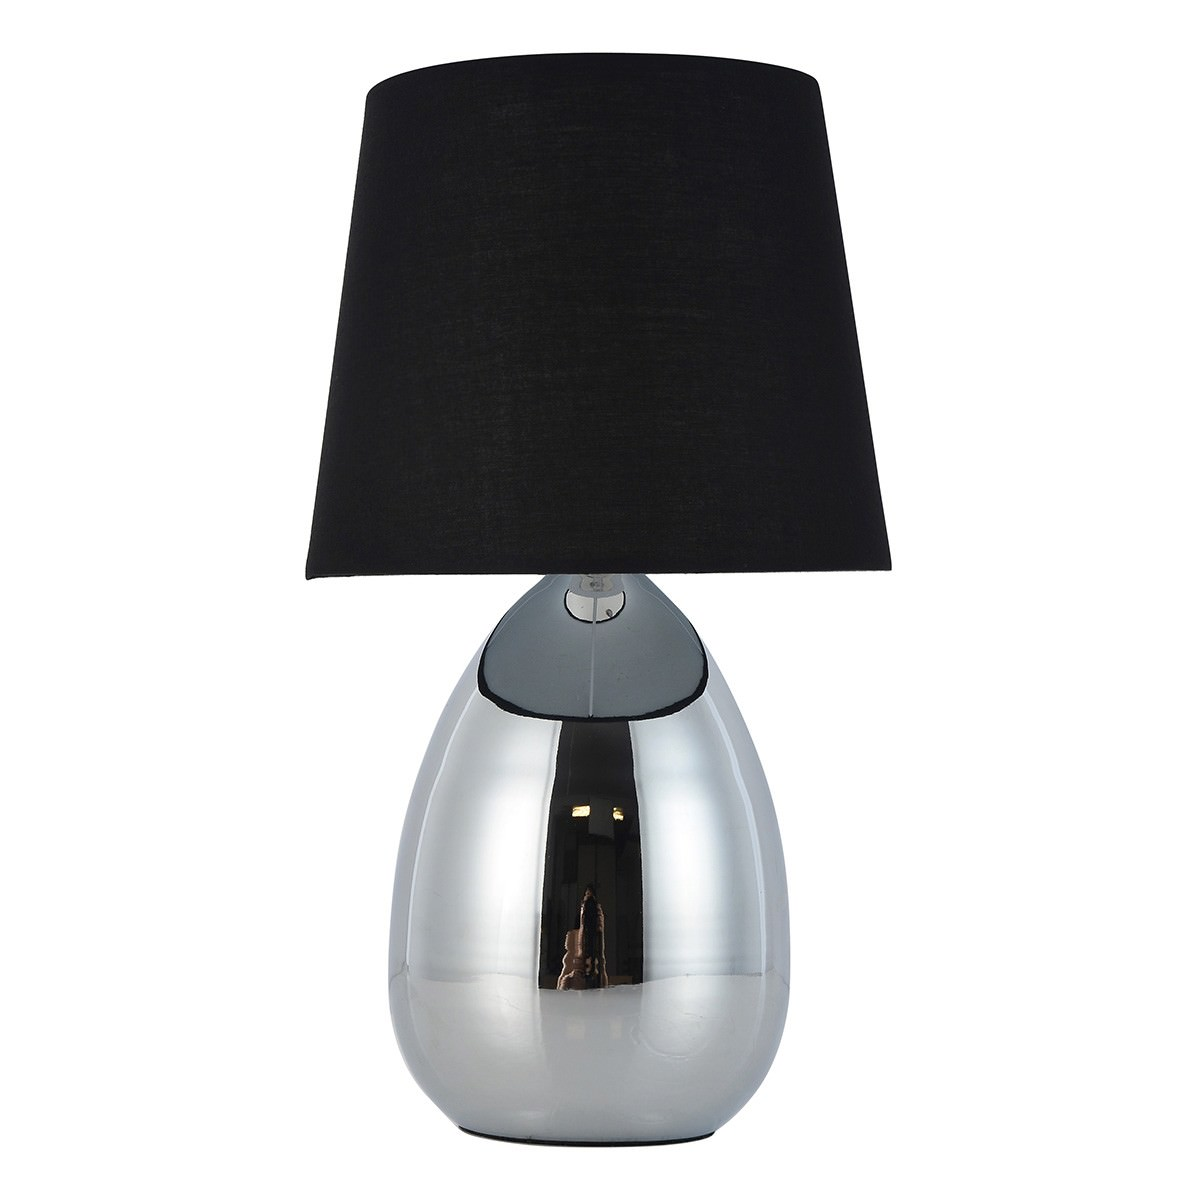 Libby Metal Base Touch Table Lamp, Black / Chrome